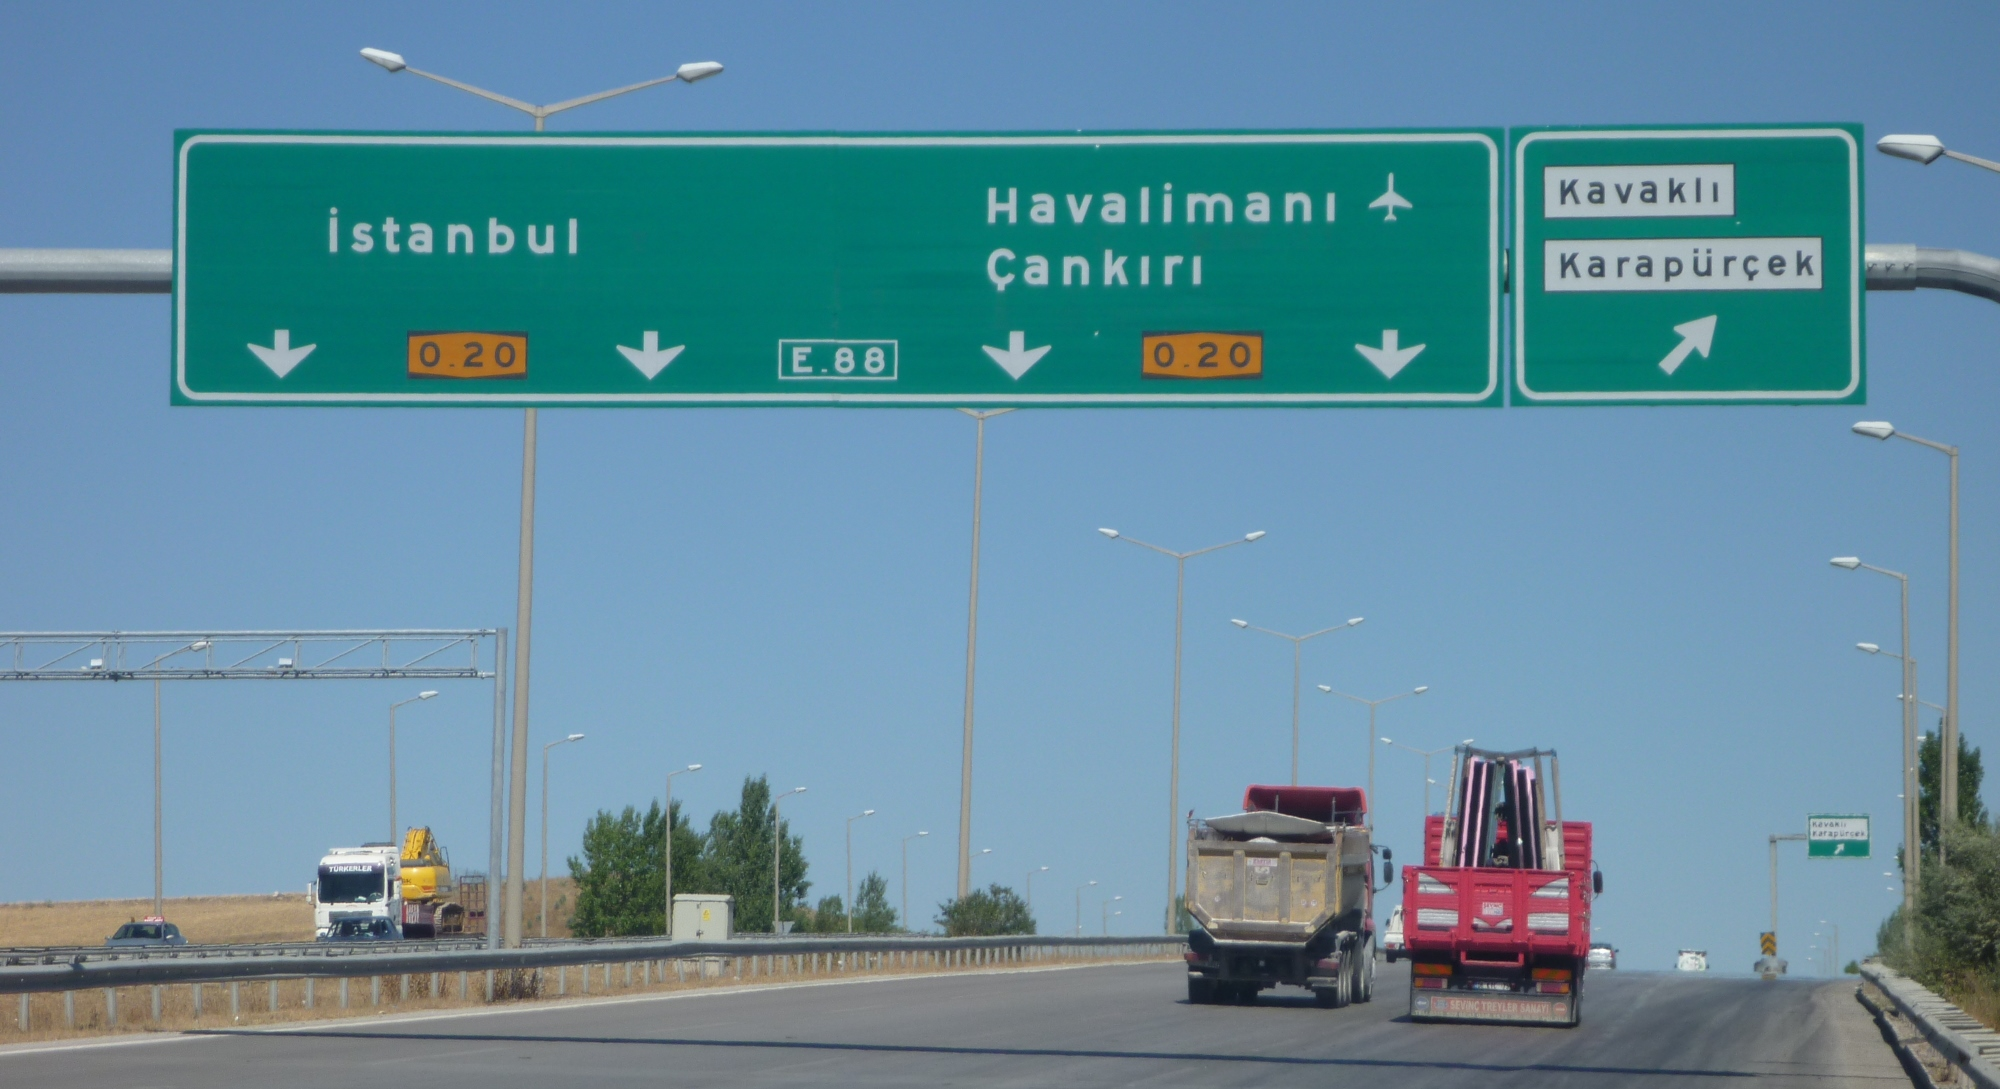 Turkey uses the FHWA typeface.